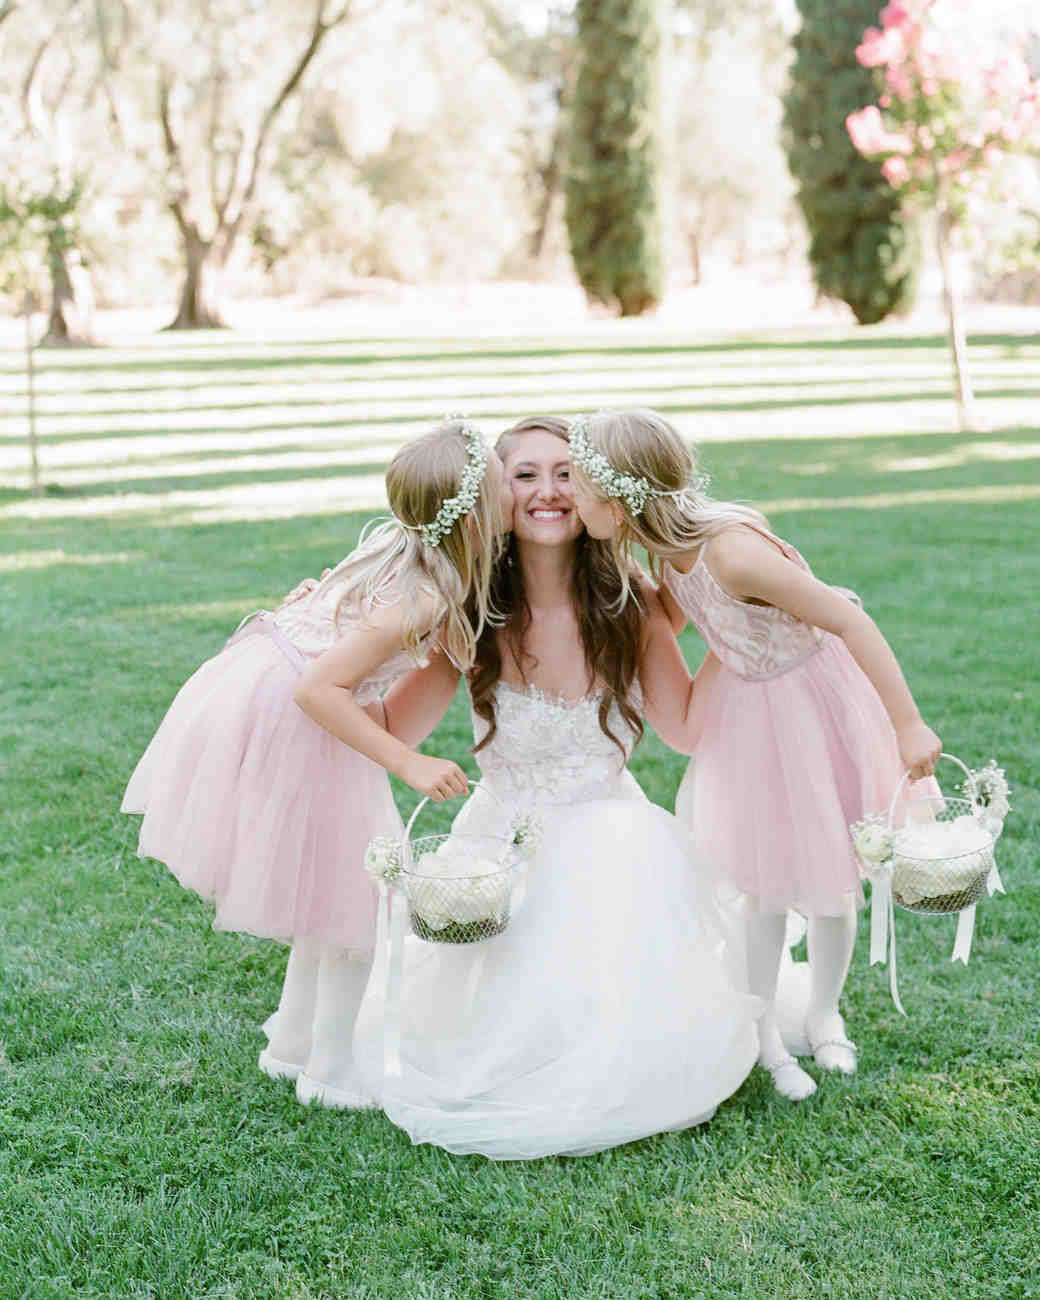 two flower girls holding white wire baskets